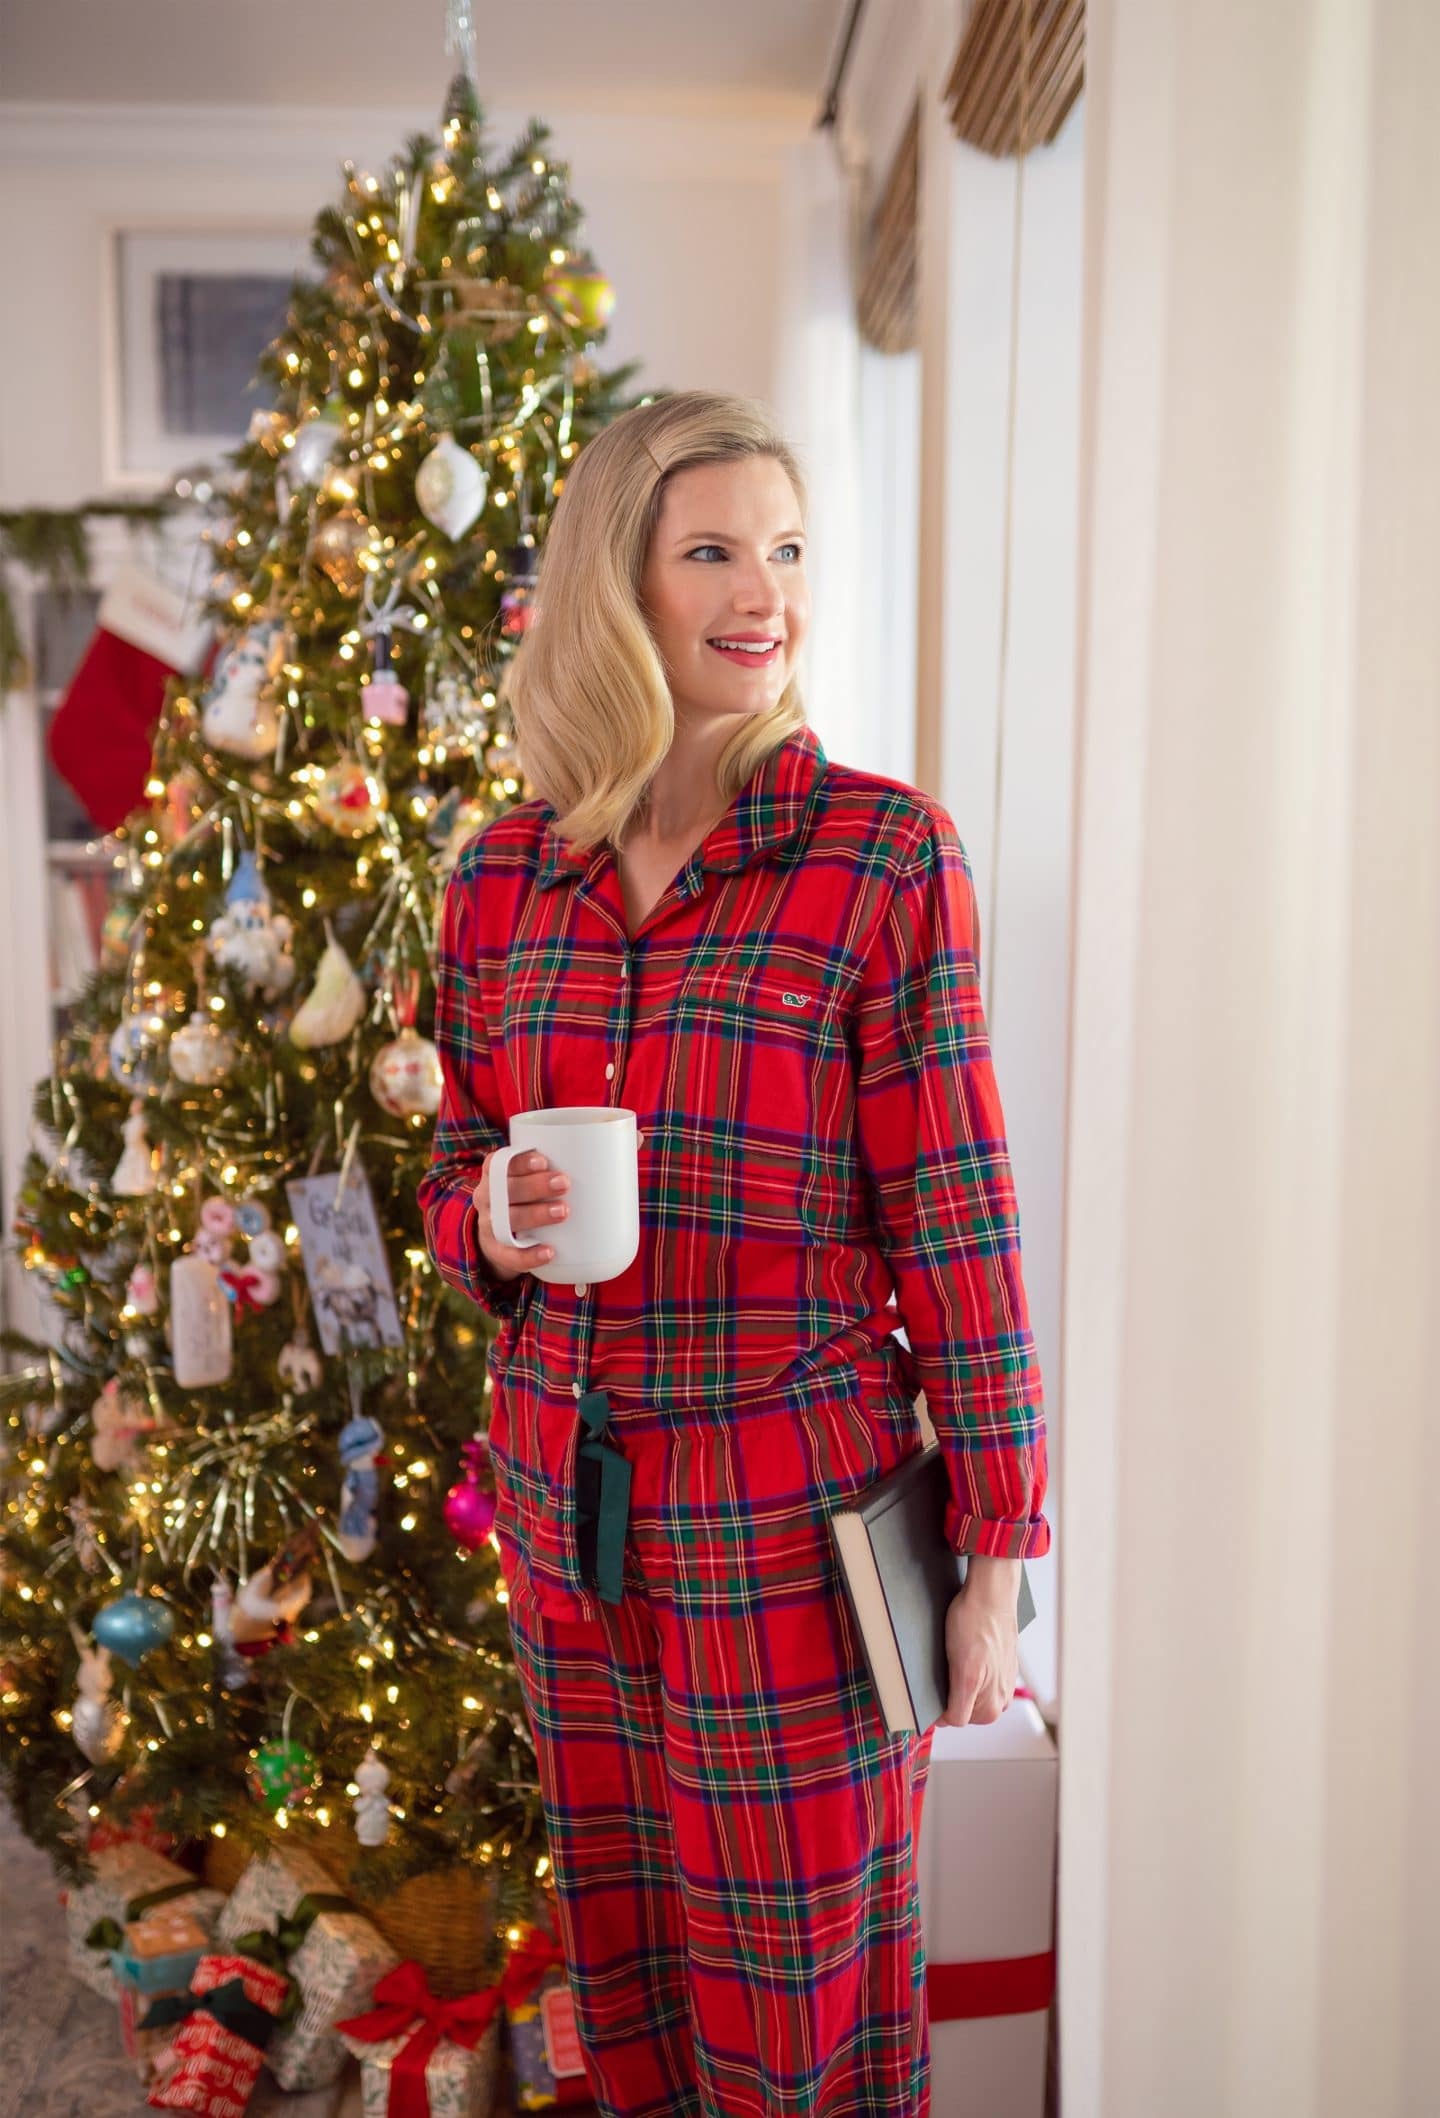 Plaid Pajamas worn by Ashley Brooke on www.Ashleybrookedesigns.com